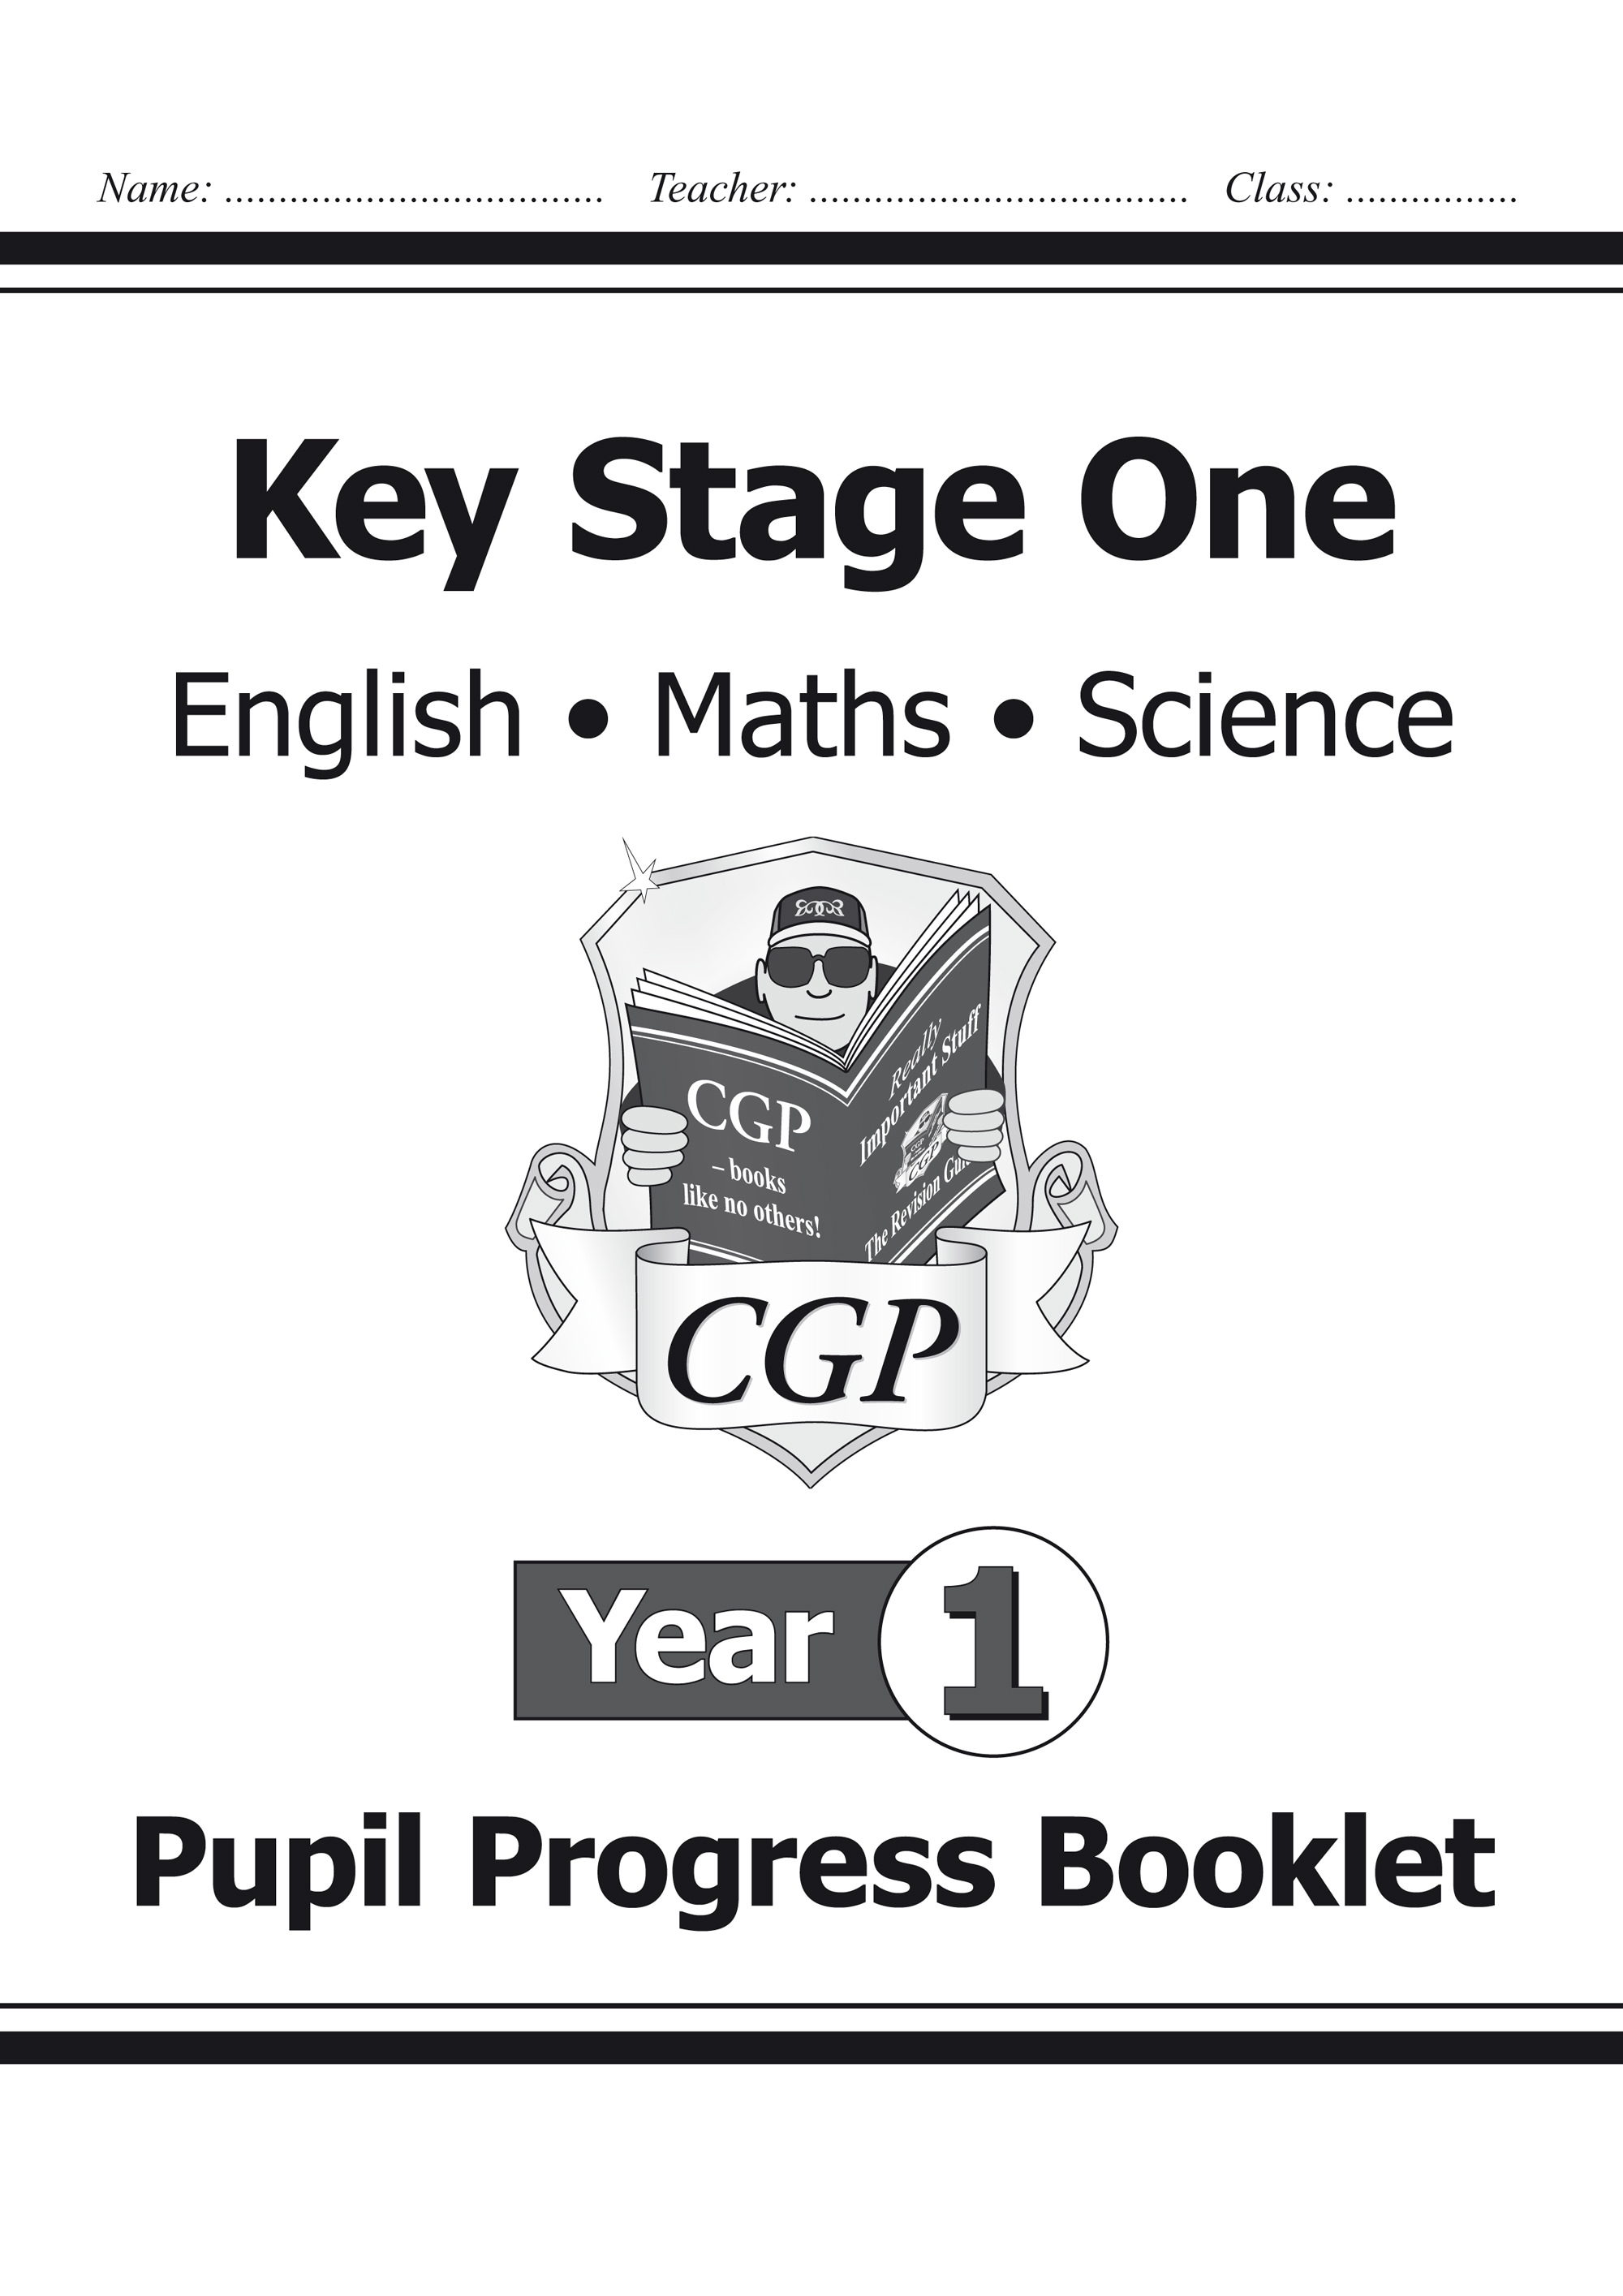 SME1P11 - KS1 Pupil Progress Booklet for English, Maths and Science - Year 1